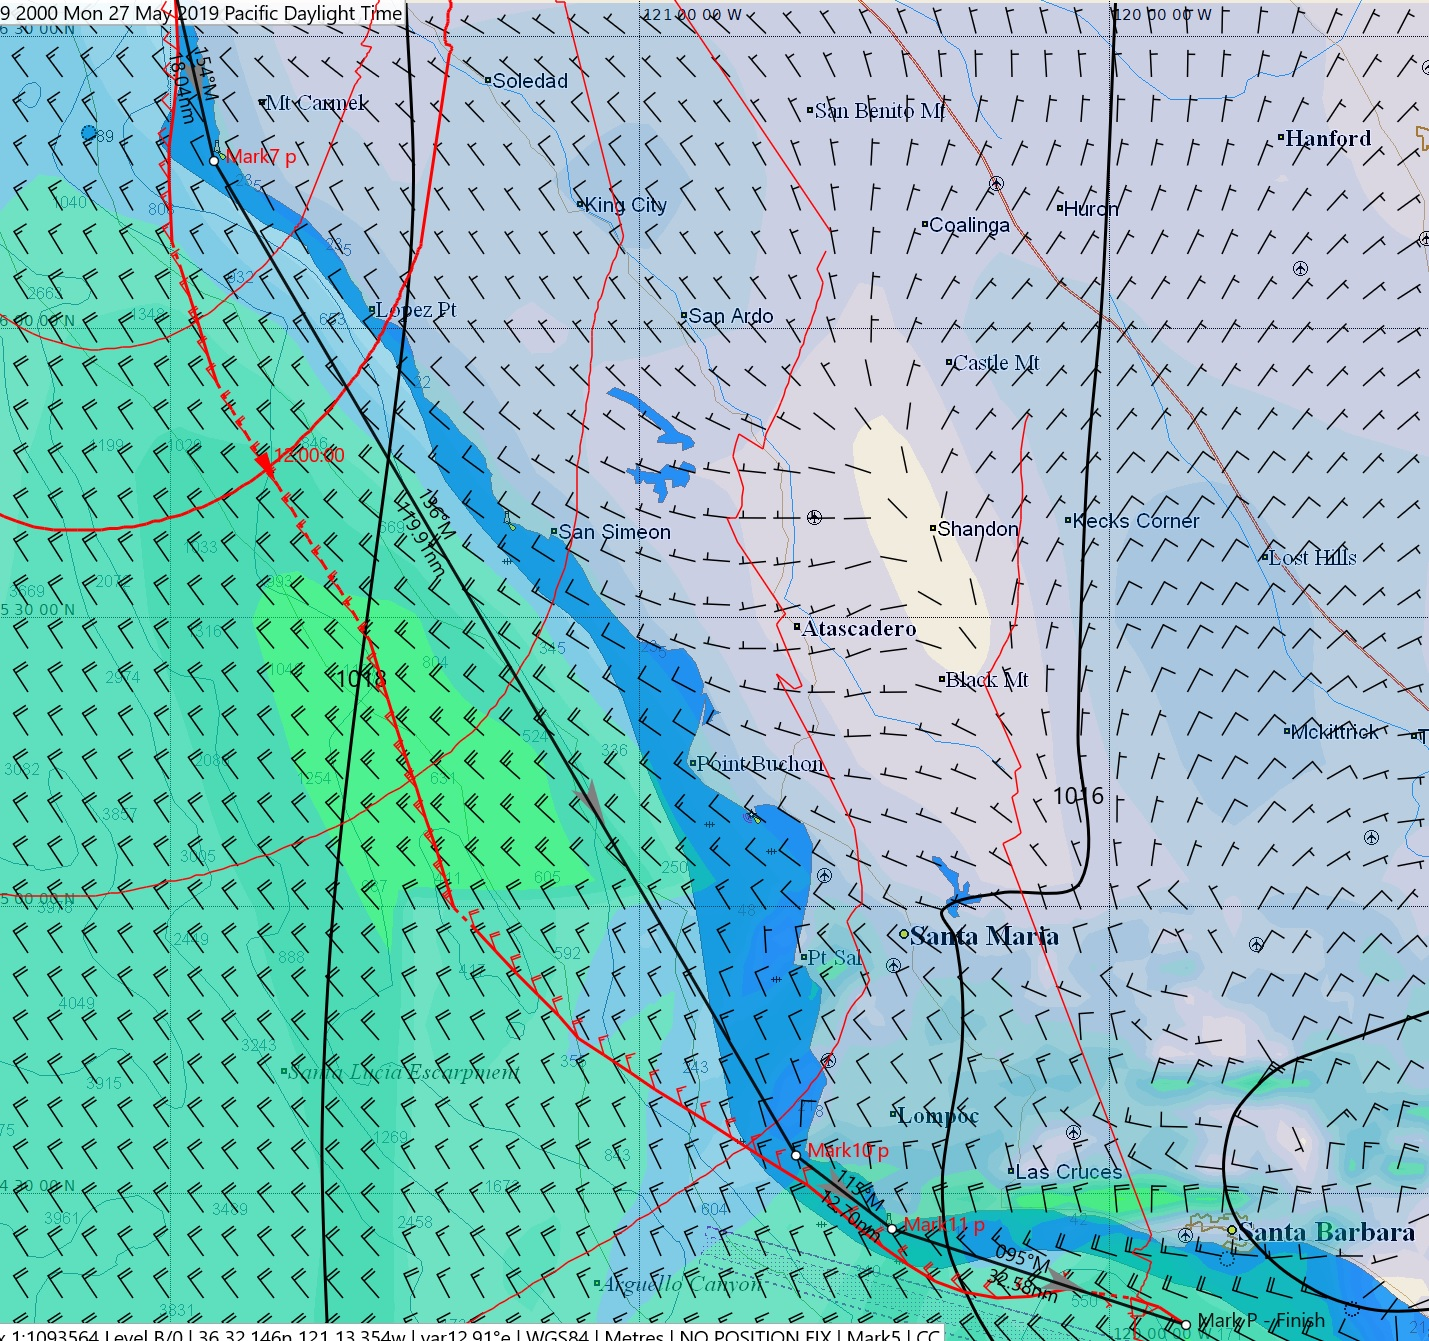 Planned route. We caught up to the 25kt pressure zone and rode it south